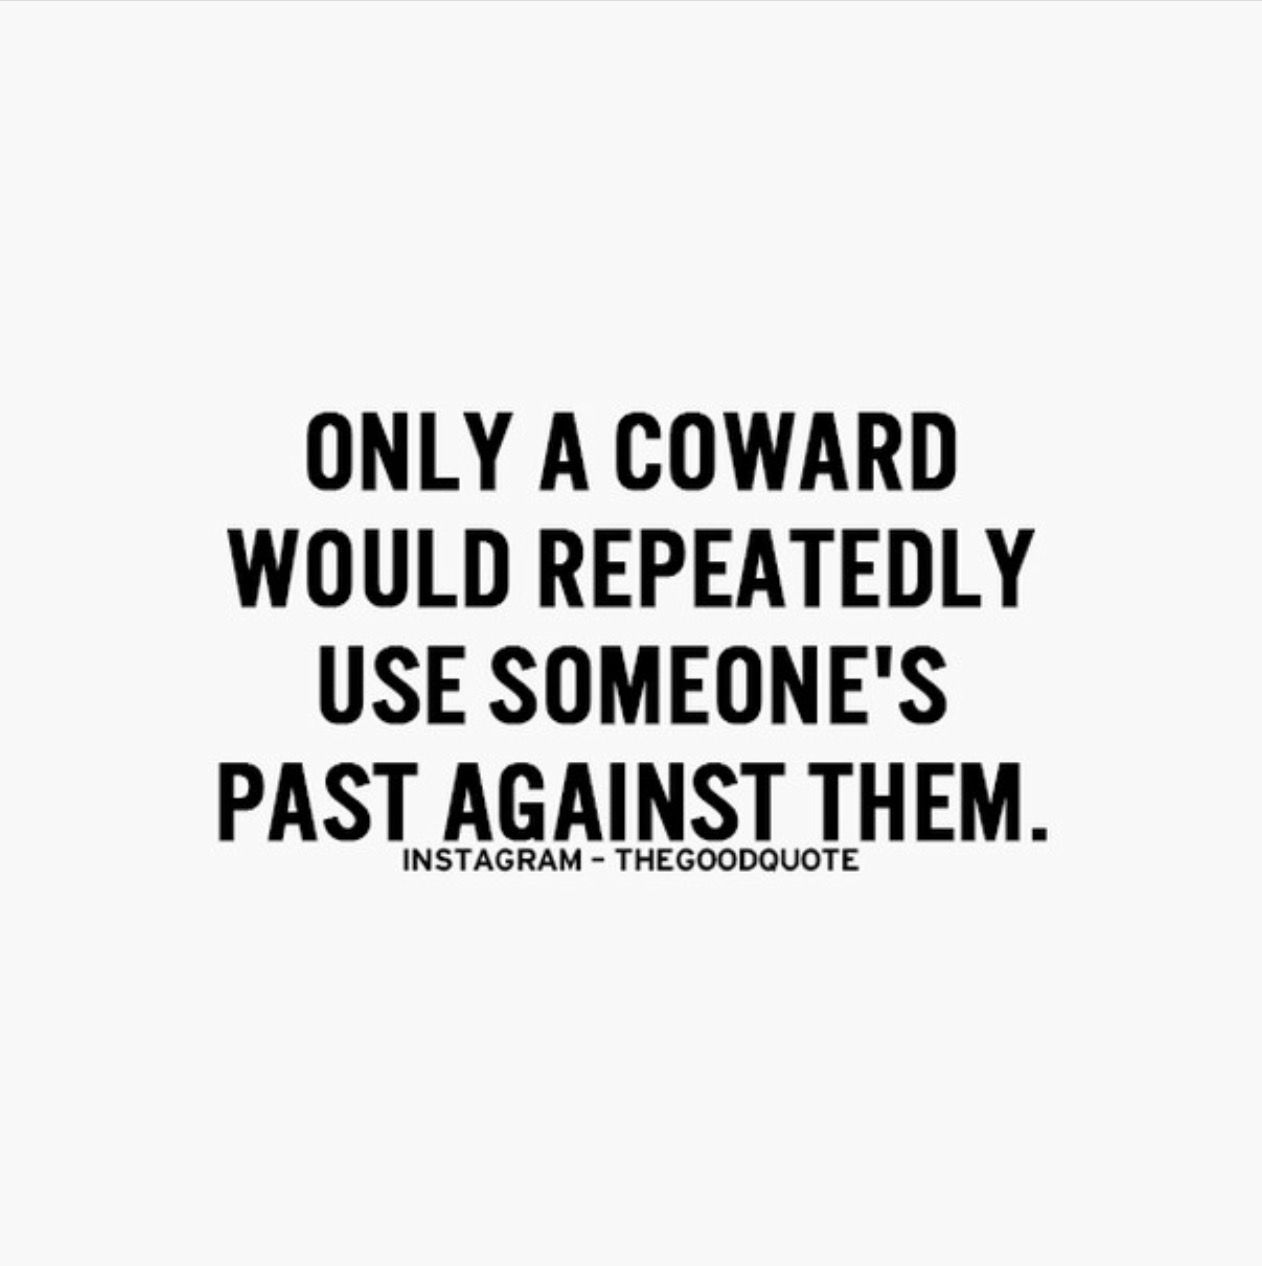 Cowards: they come disguised as strength, but when you strip away the facade, the fragile, vulnerable truth lies there.